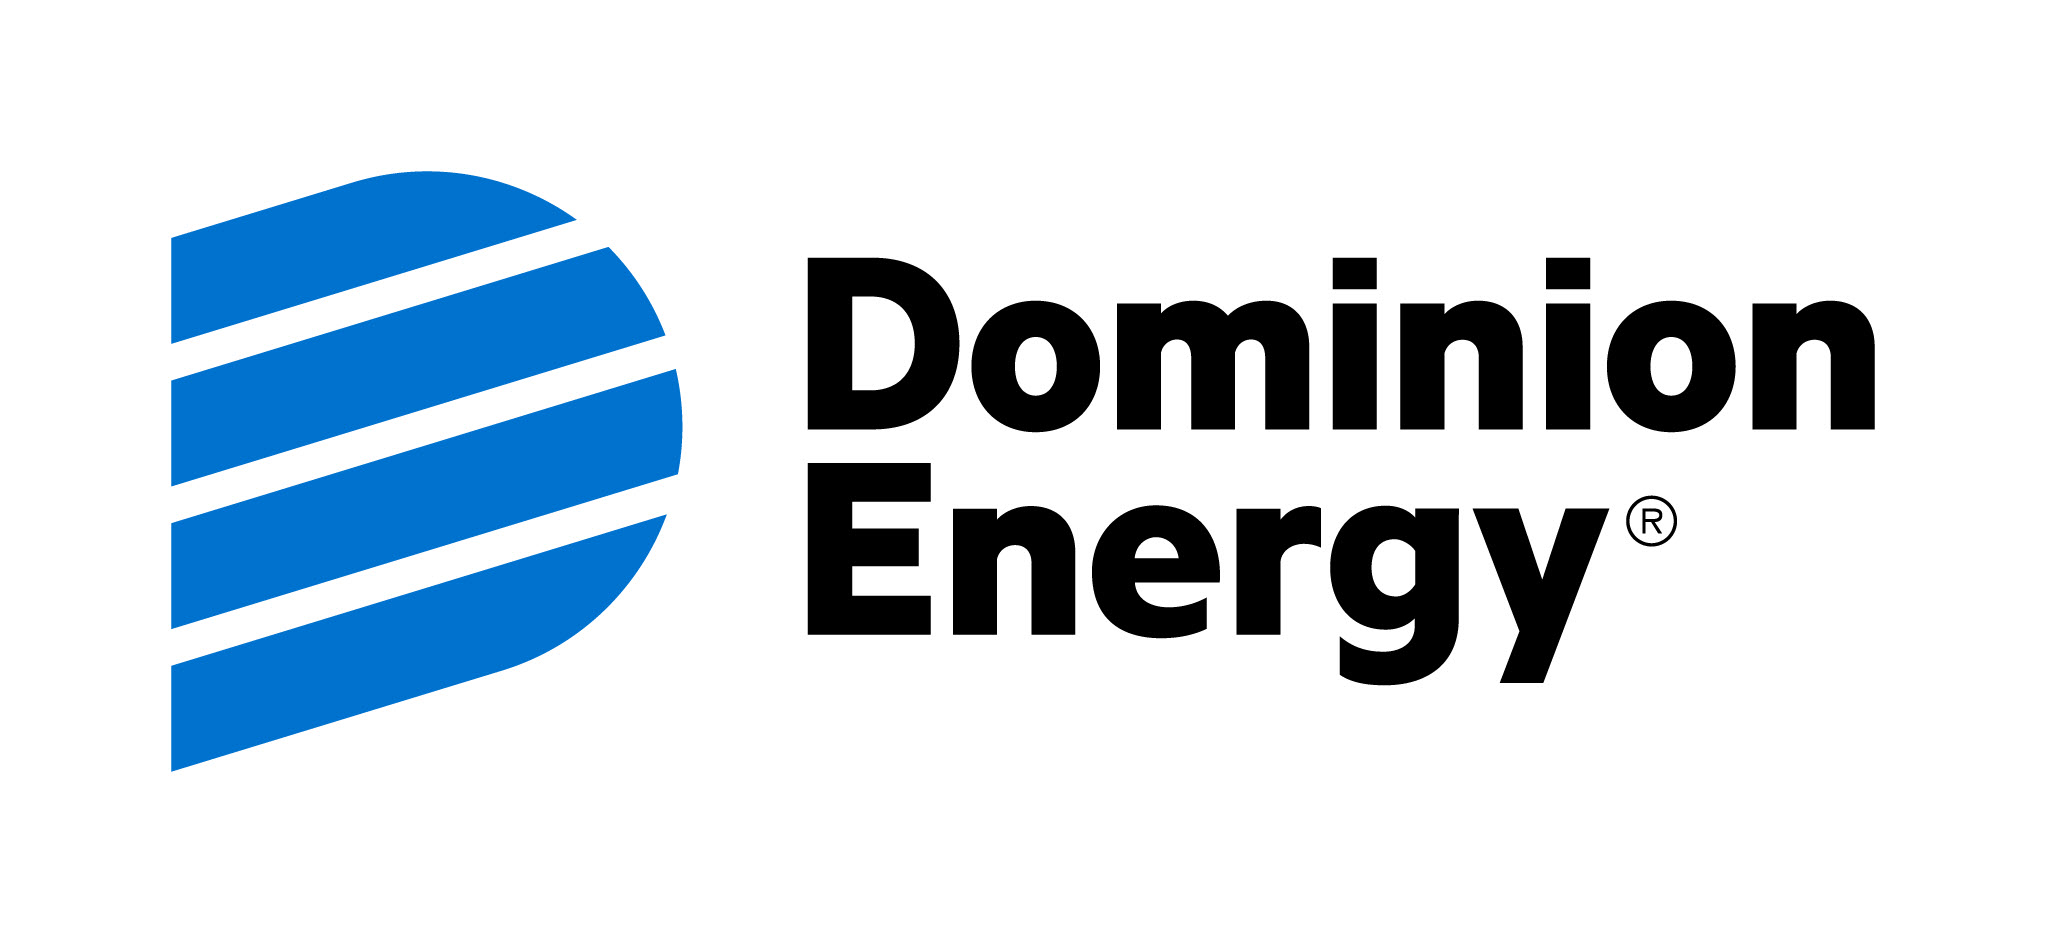 Dominion Energy Logo - INTERNAL USE